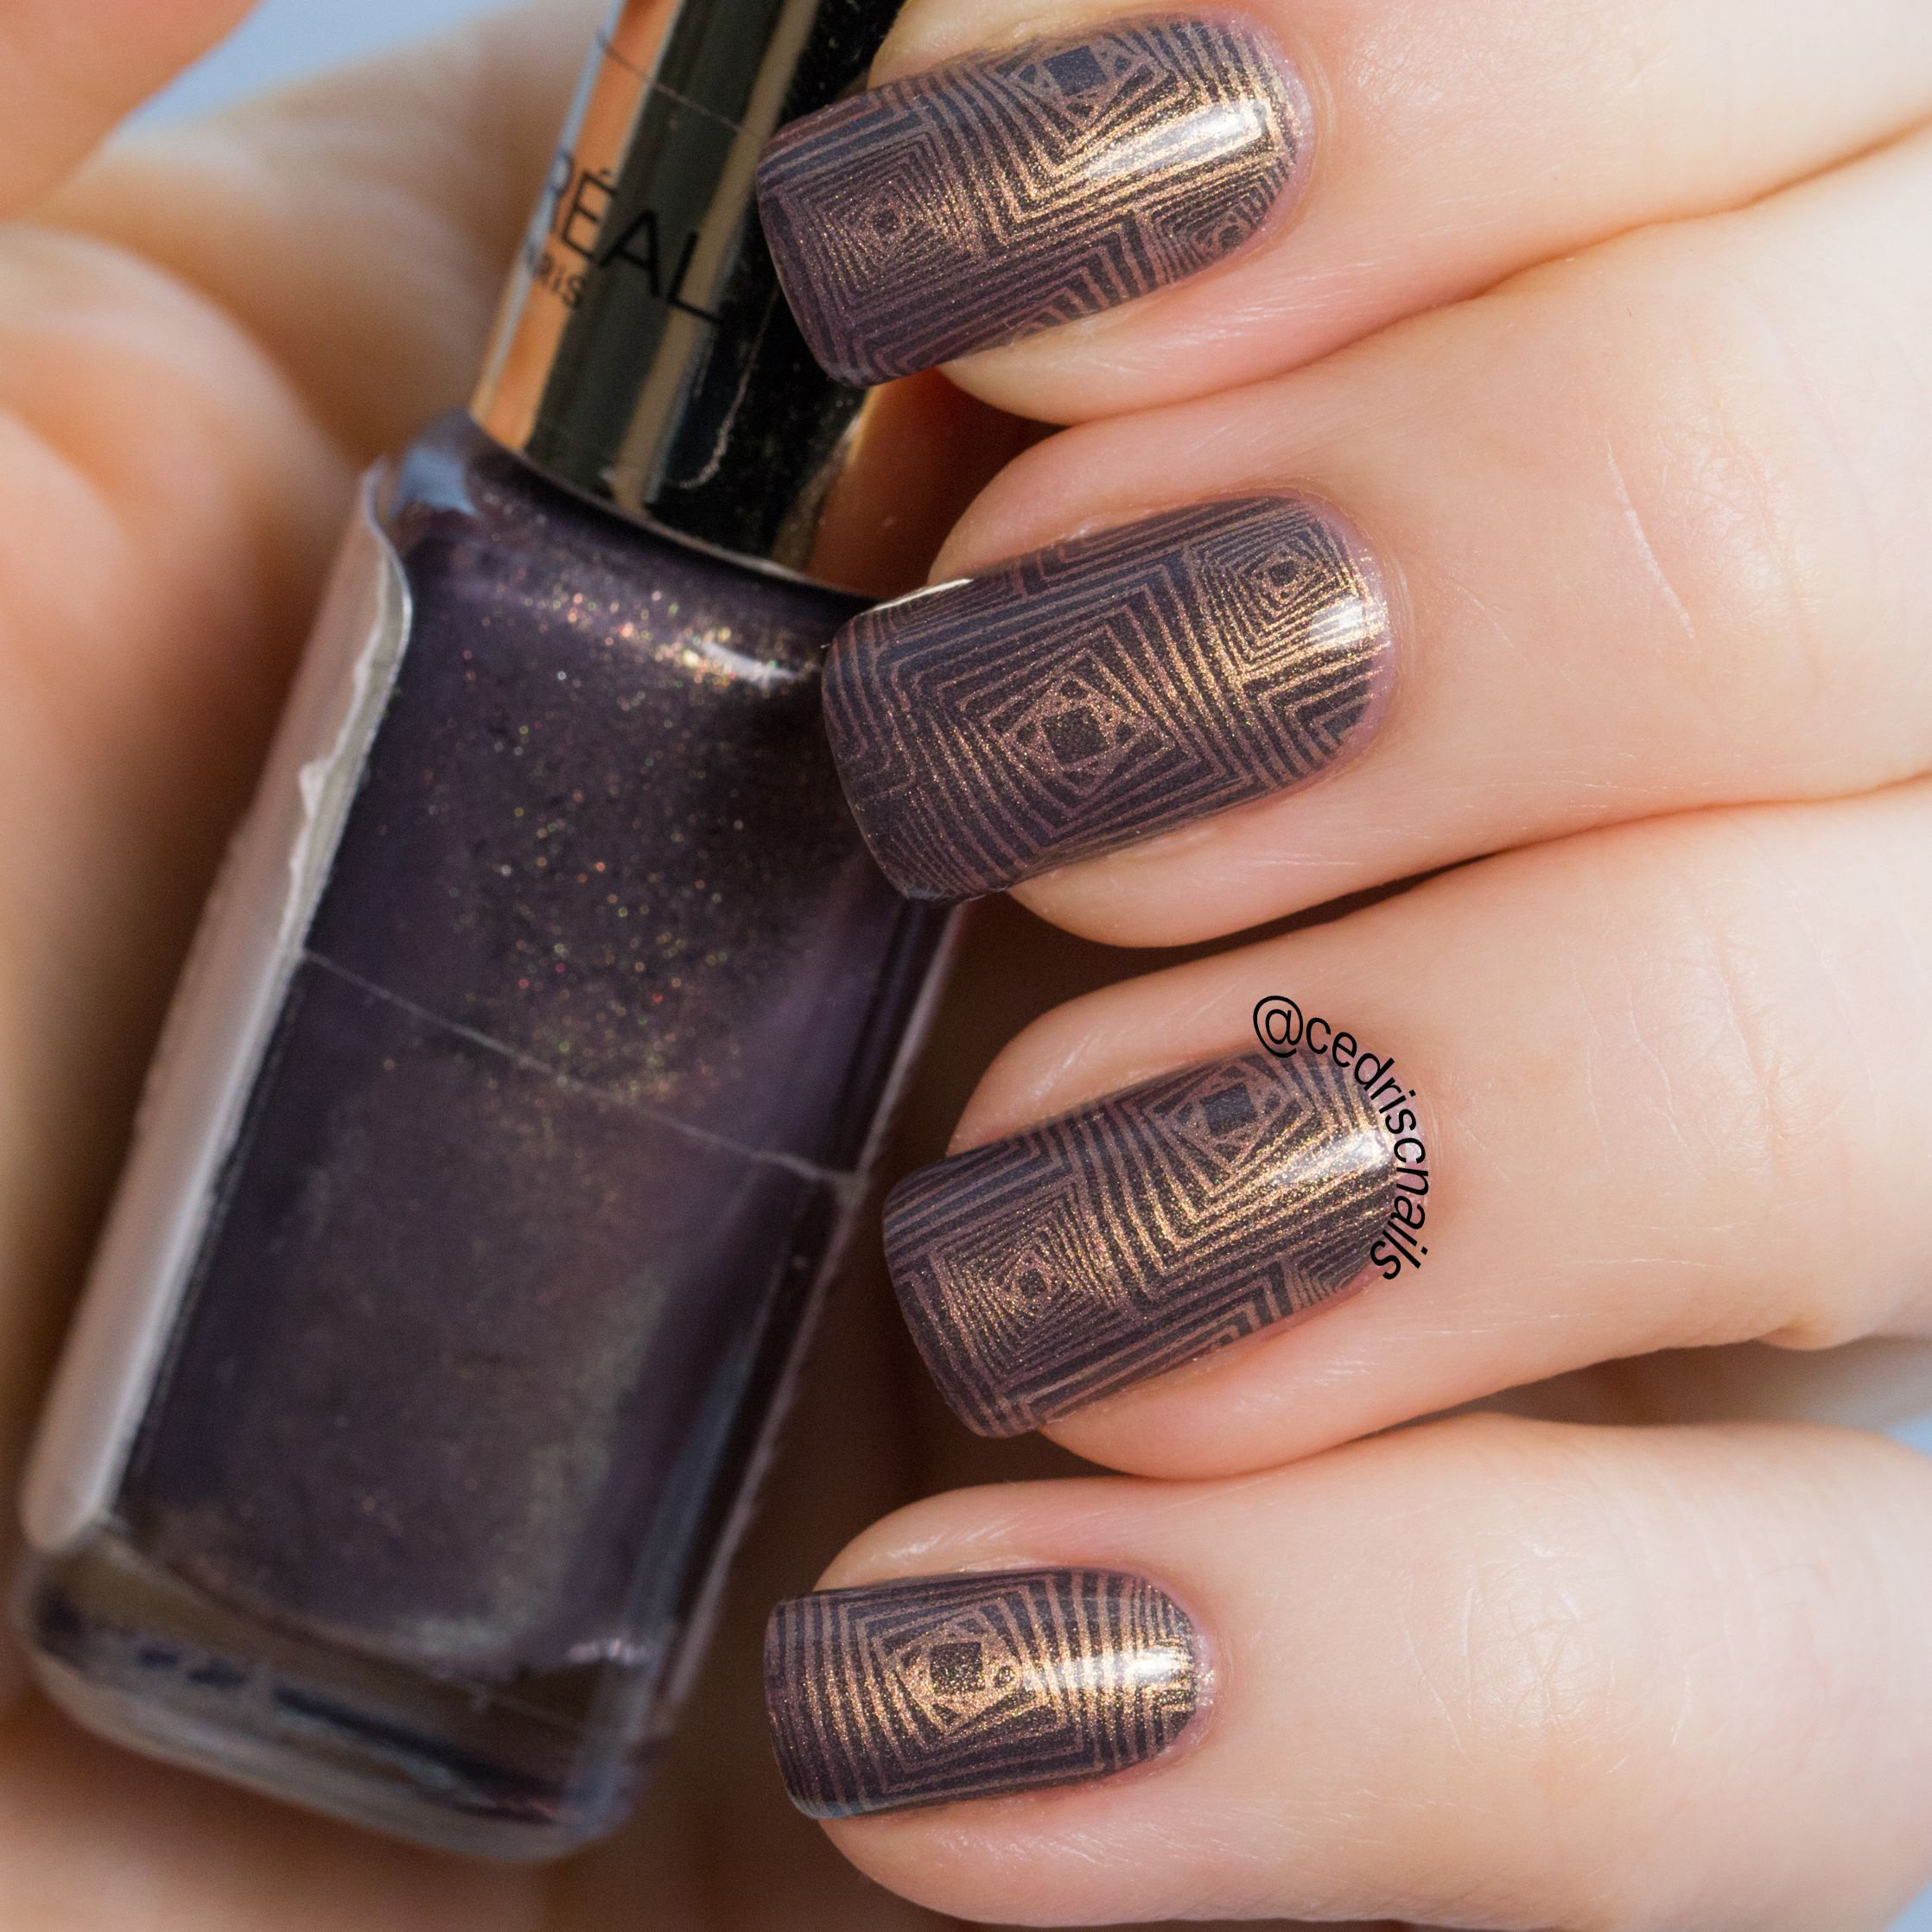 Geometric nail art. Base polish is Loreal mysterious icon, stamped ...